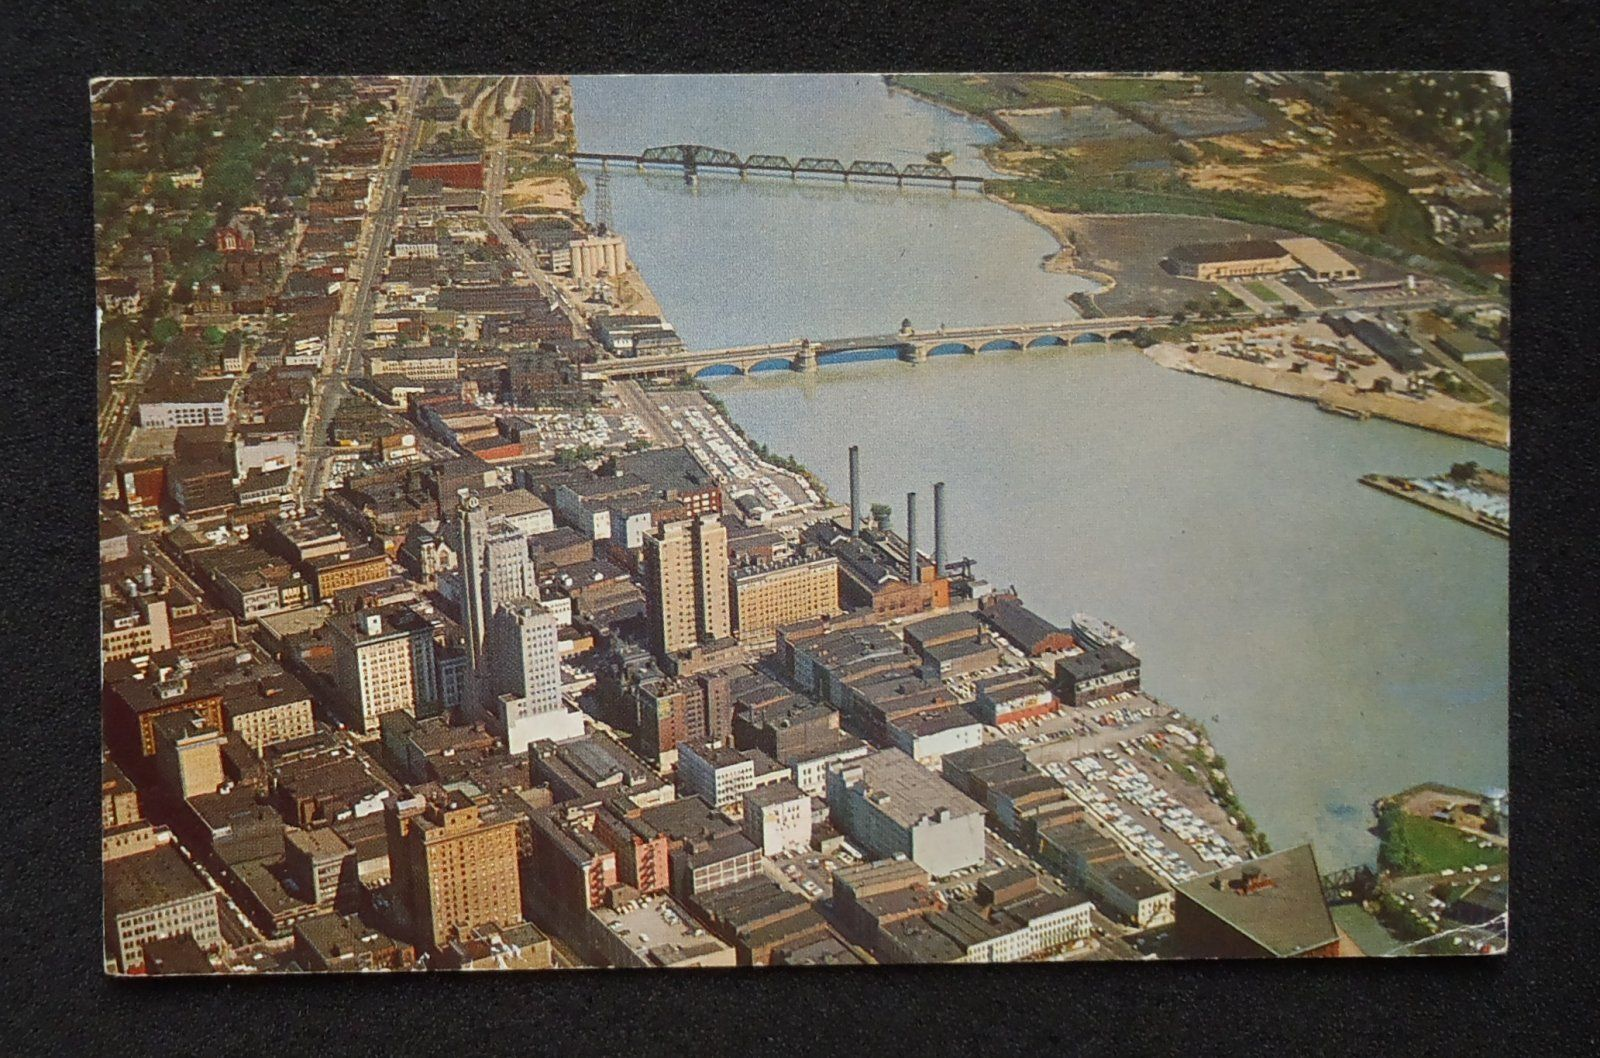 Ohio lucas county maumee - 1960 Aerial View Of Maumee River In Downtown Toledo Ohio